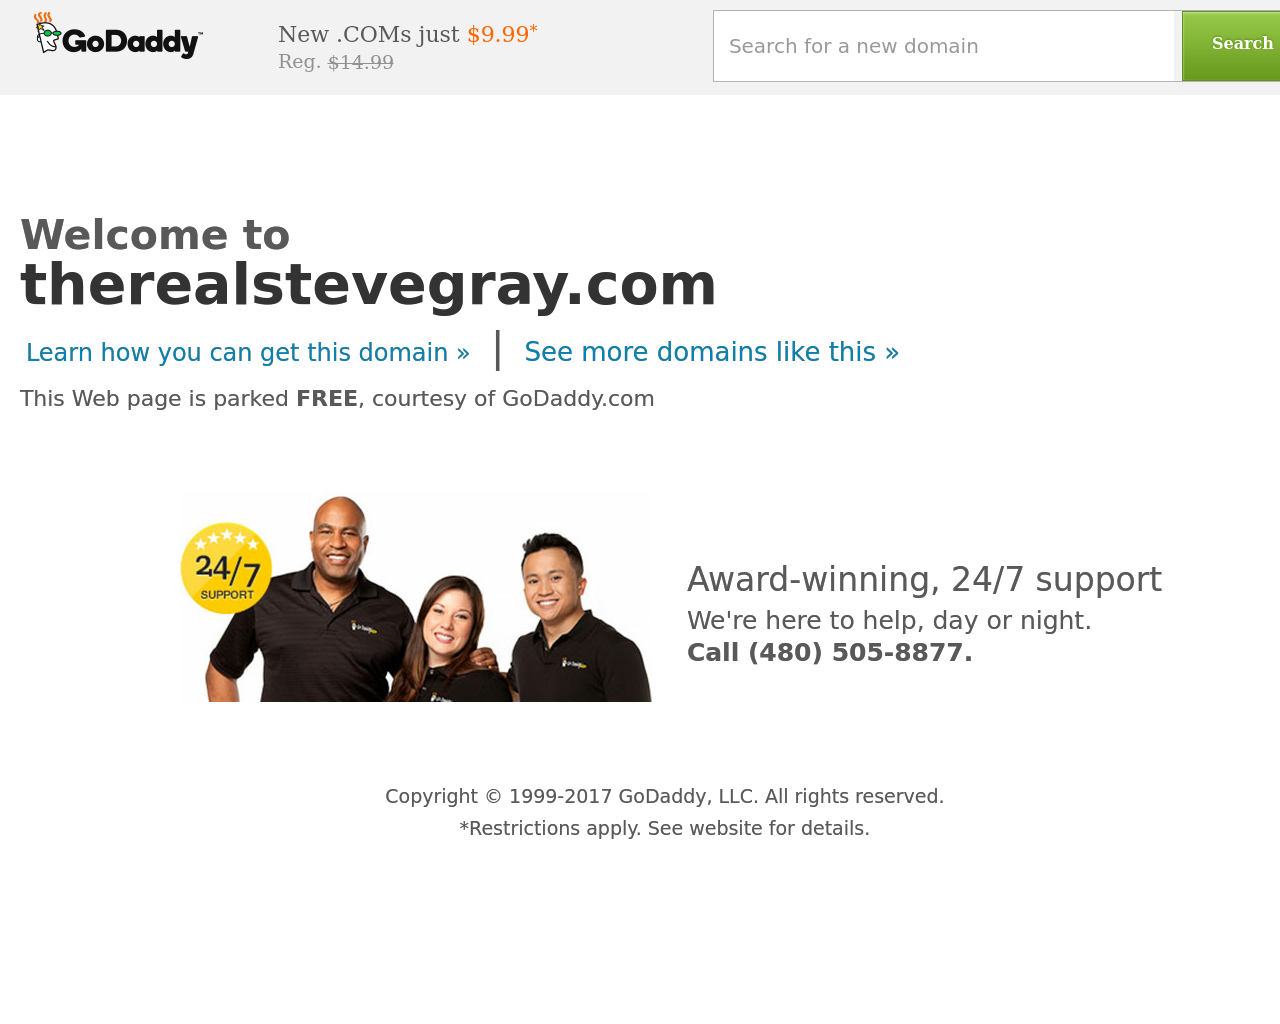 The-Real-STEVE-GRAY-Advertising-Reviews-Pricing